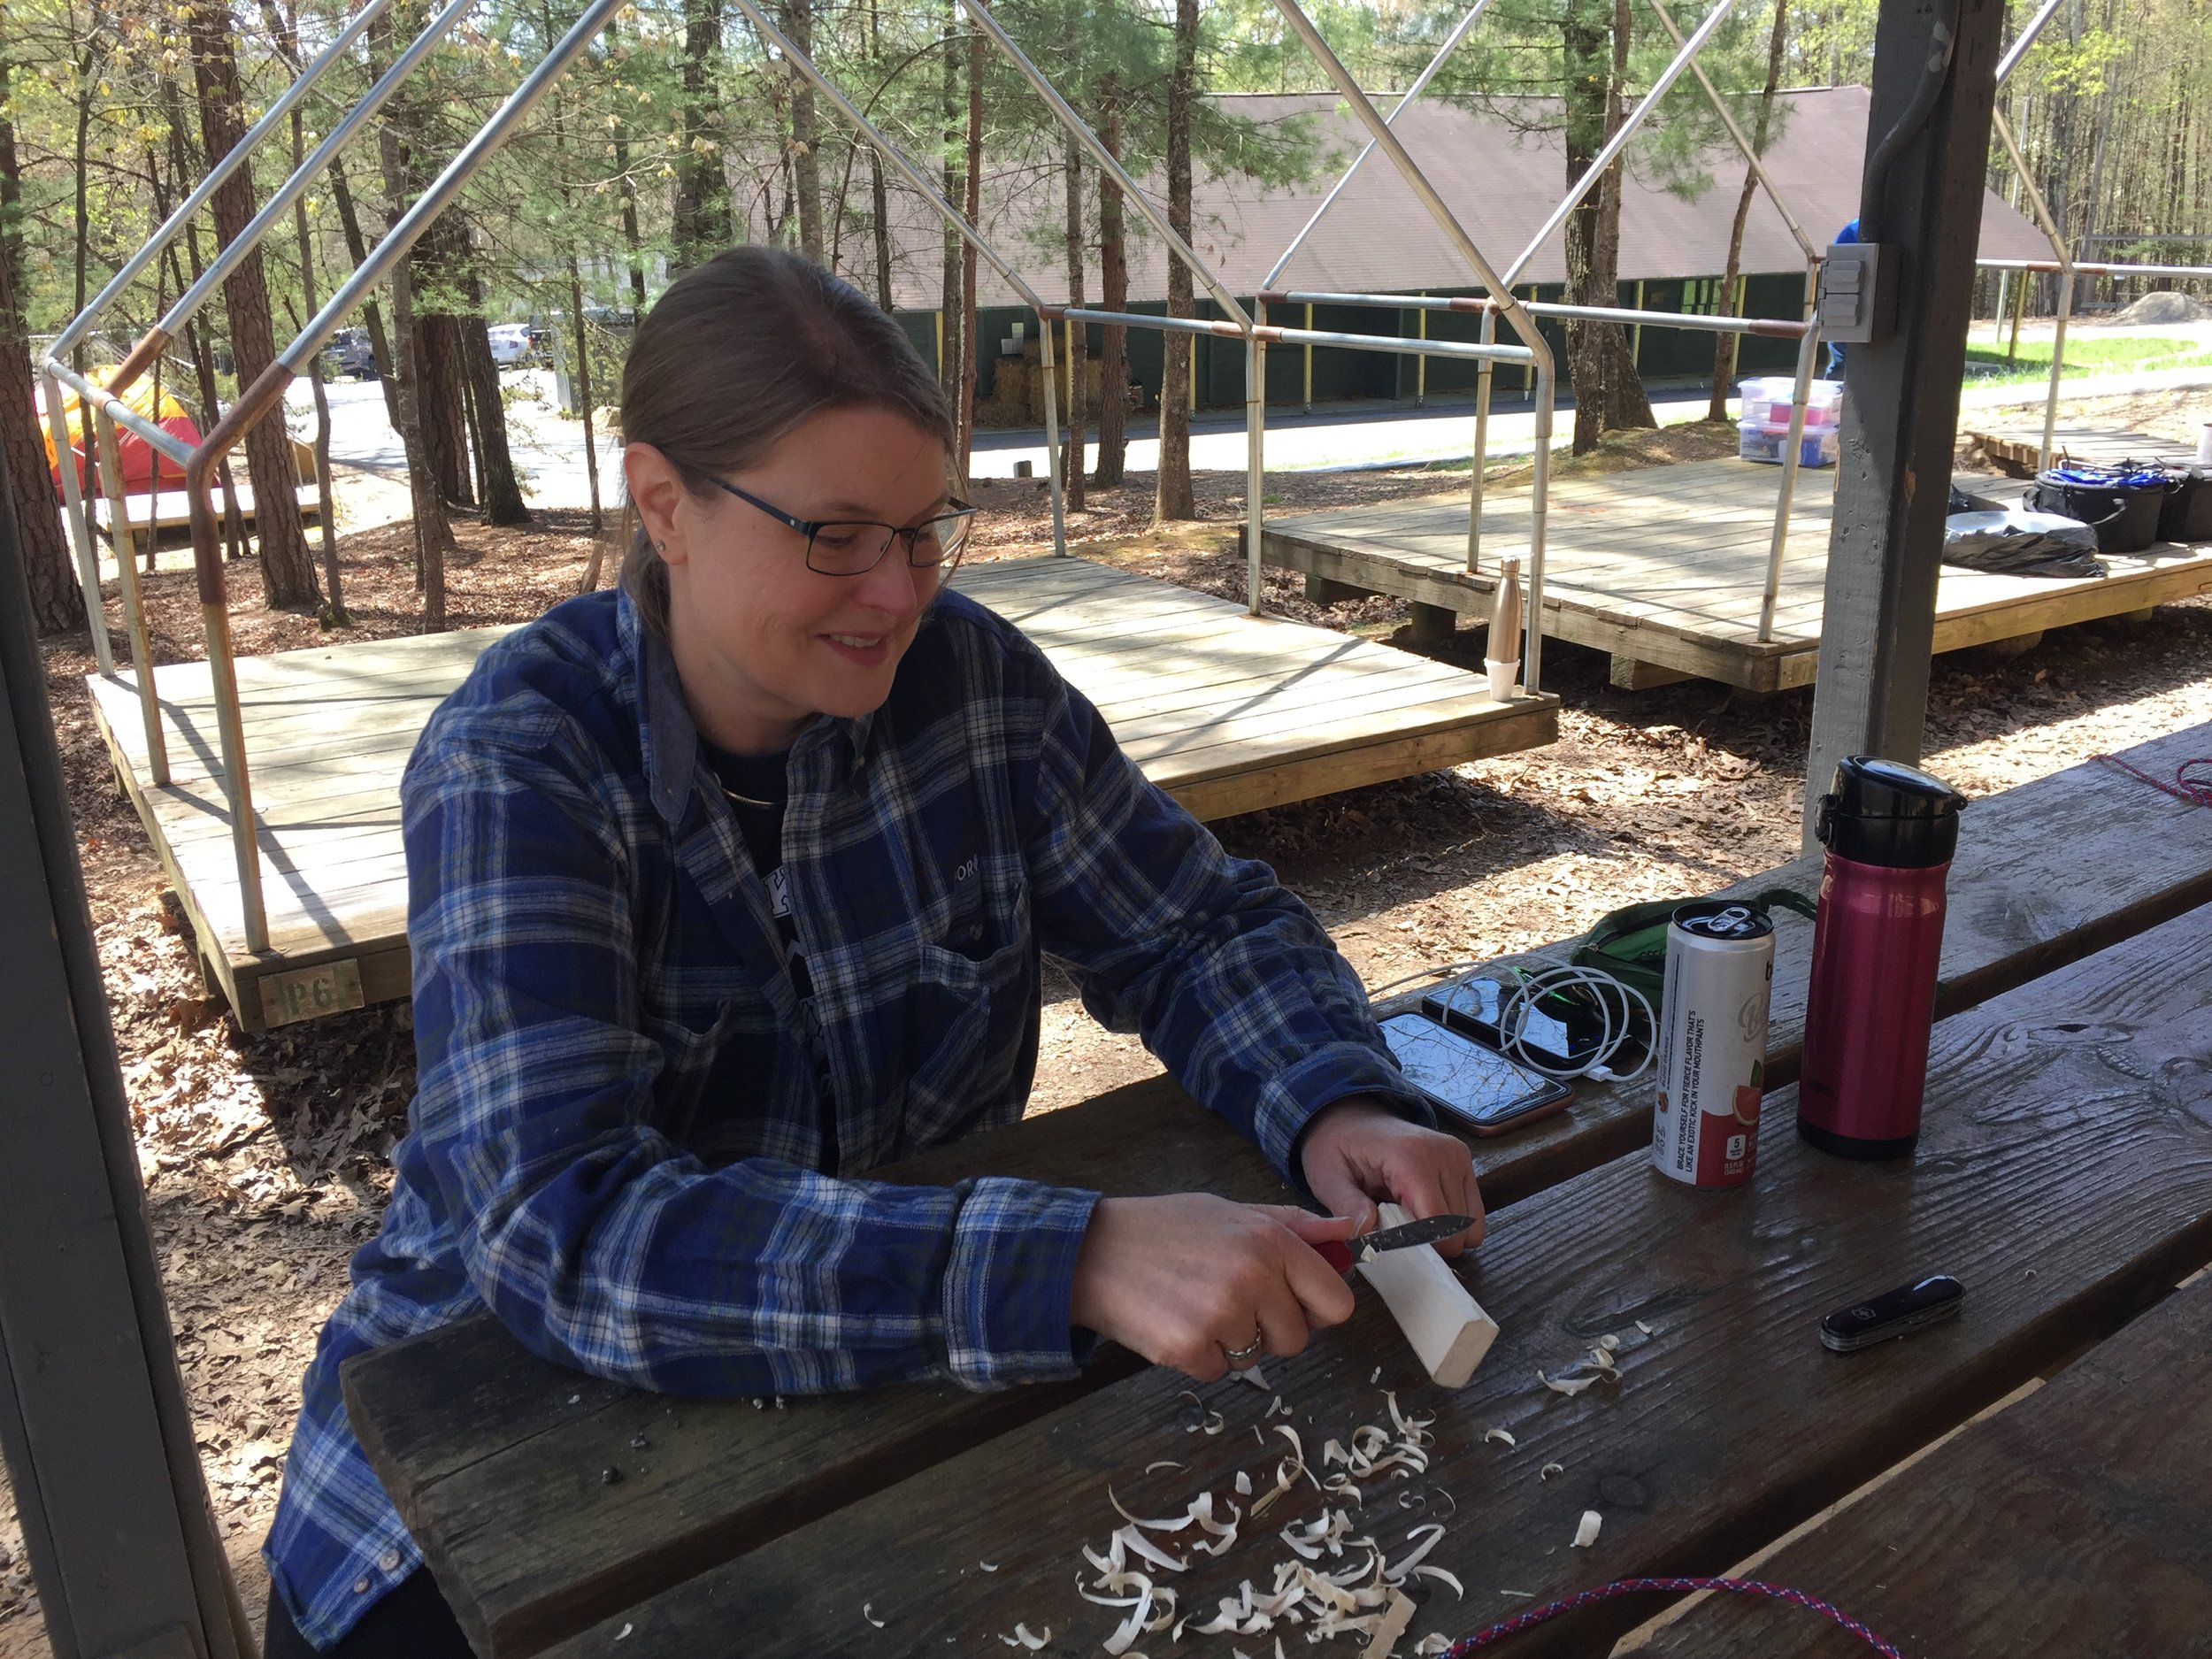 A Mom Practicing Her Whittling Skills